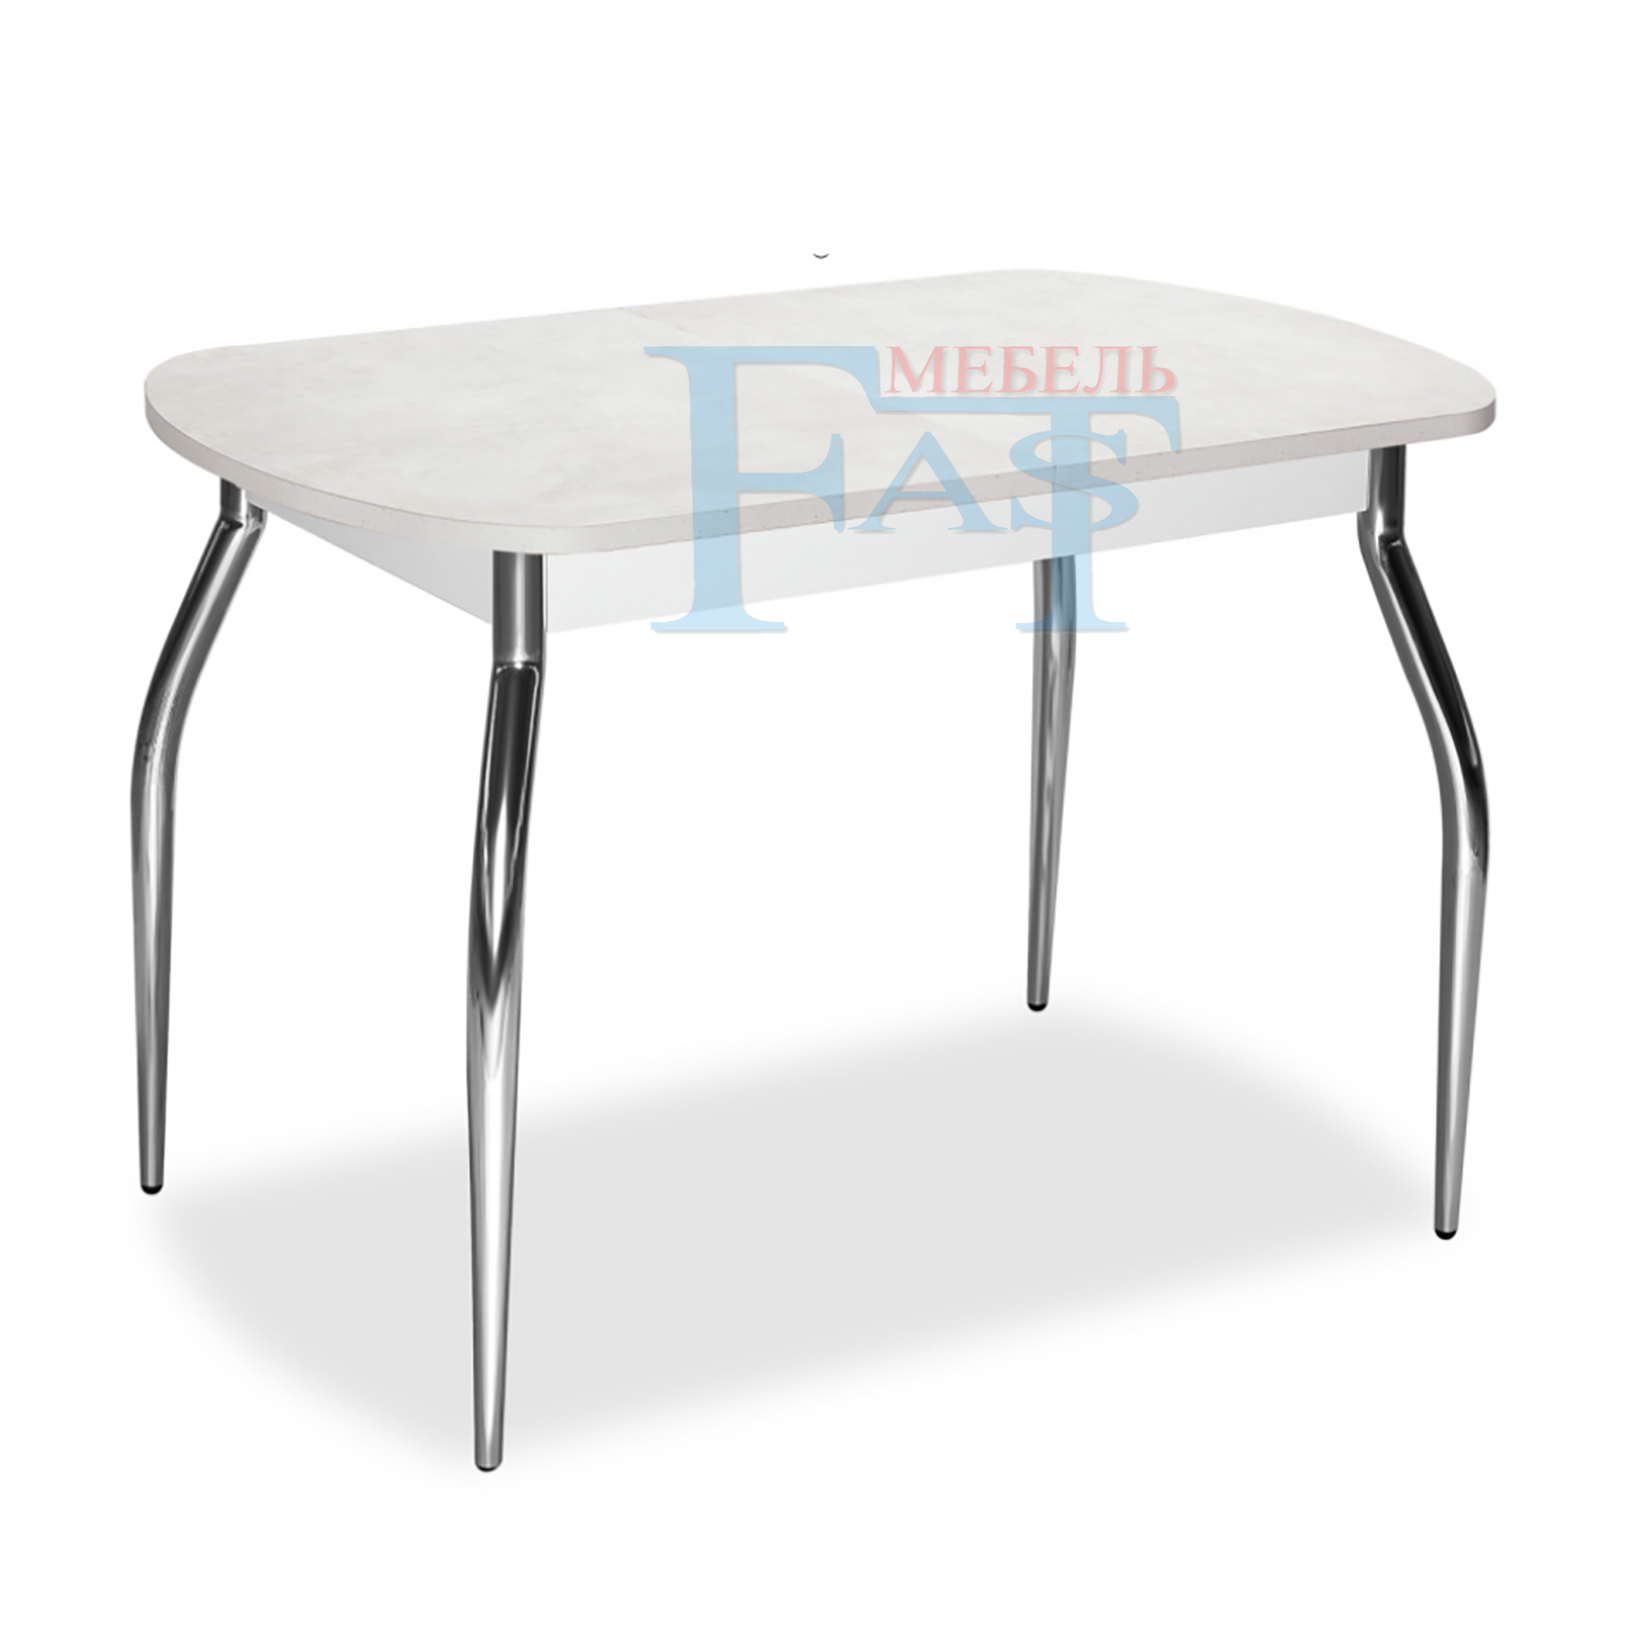 Dining Table Extendable Table Set MDF Table With Chrom Legs For Kitchen And Dining Room Modern Style For Russia Home